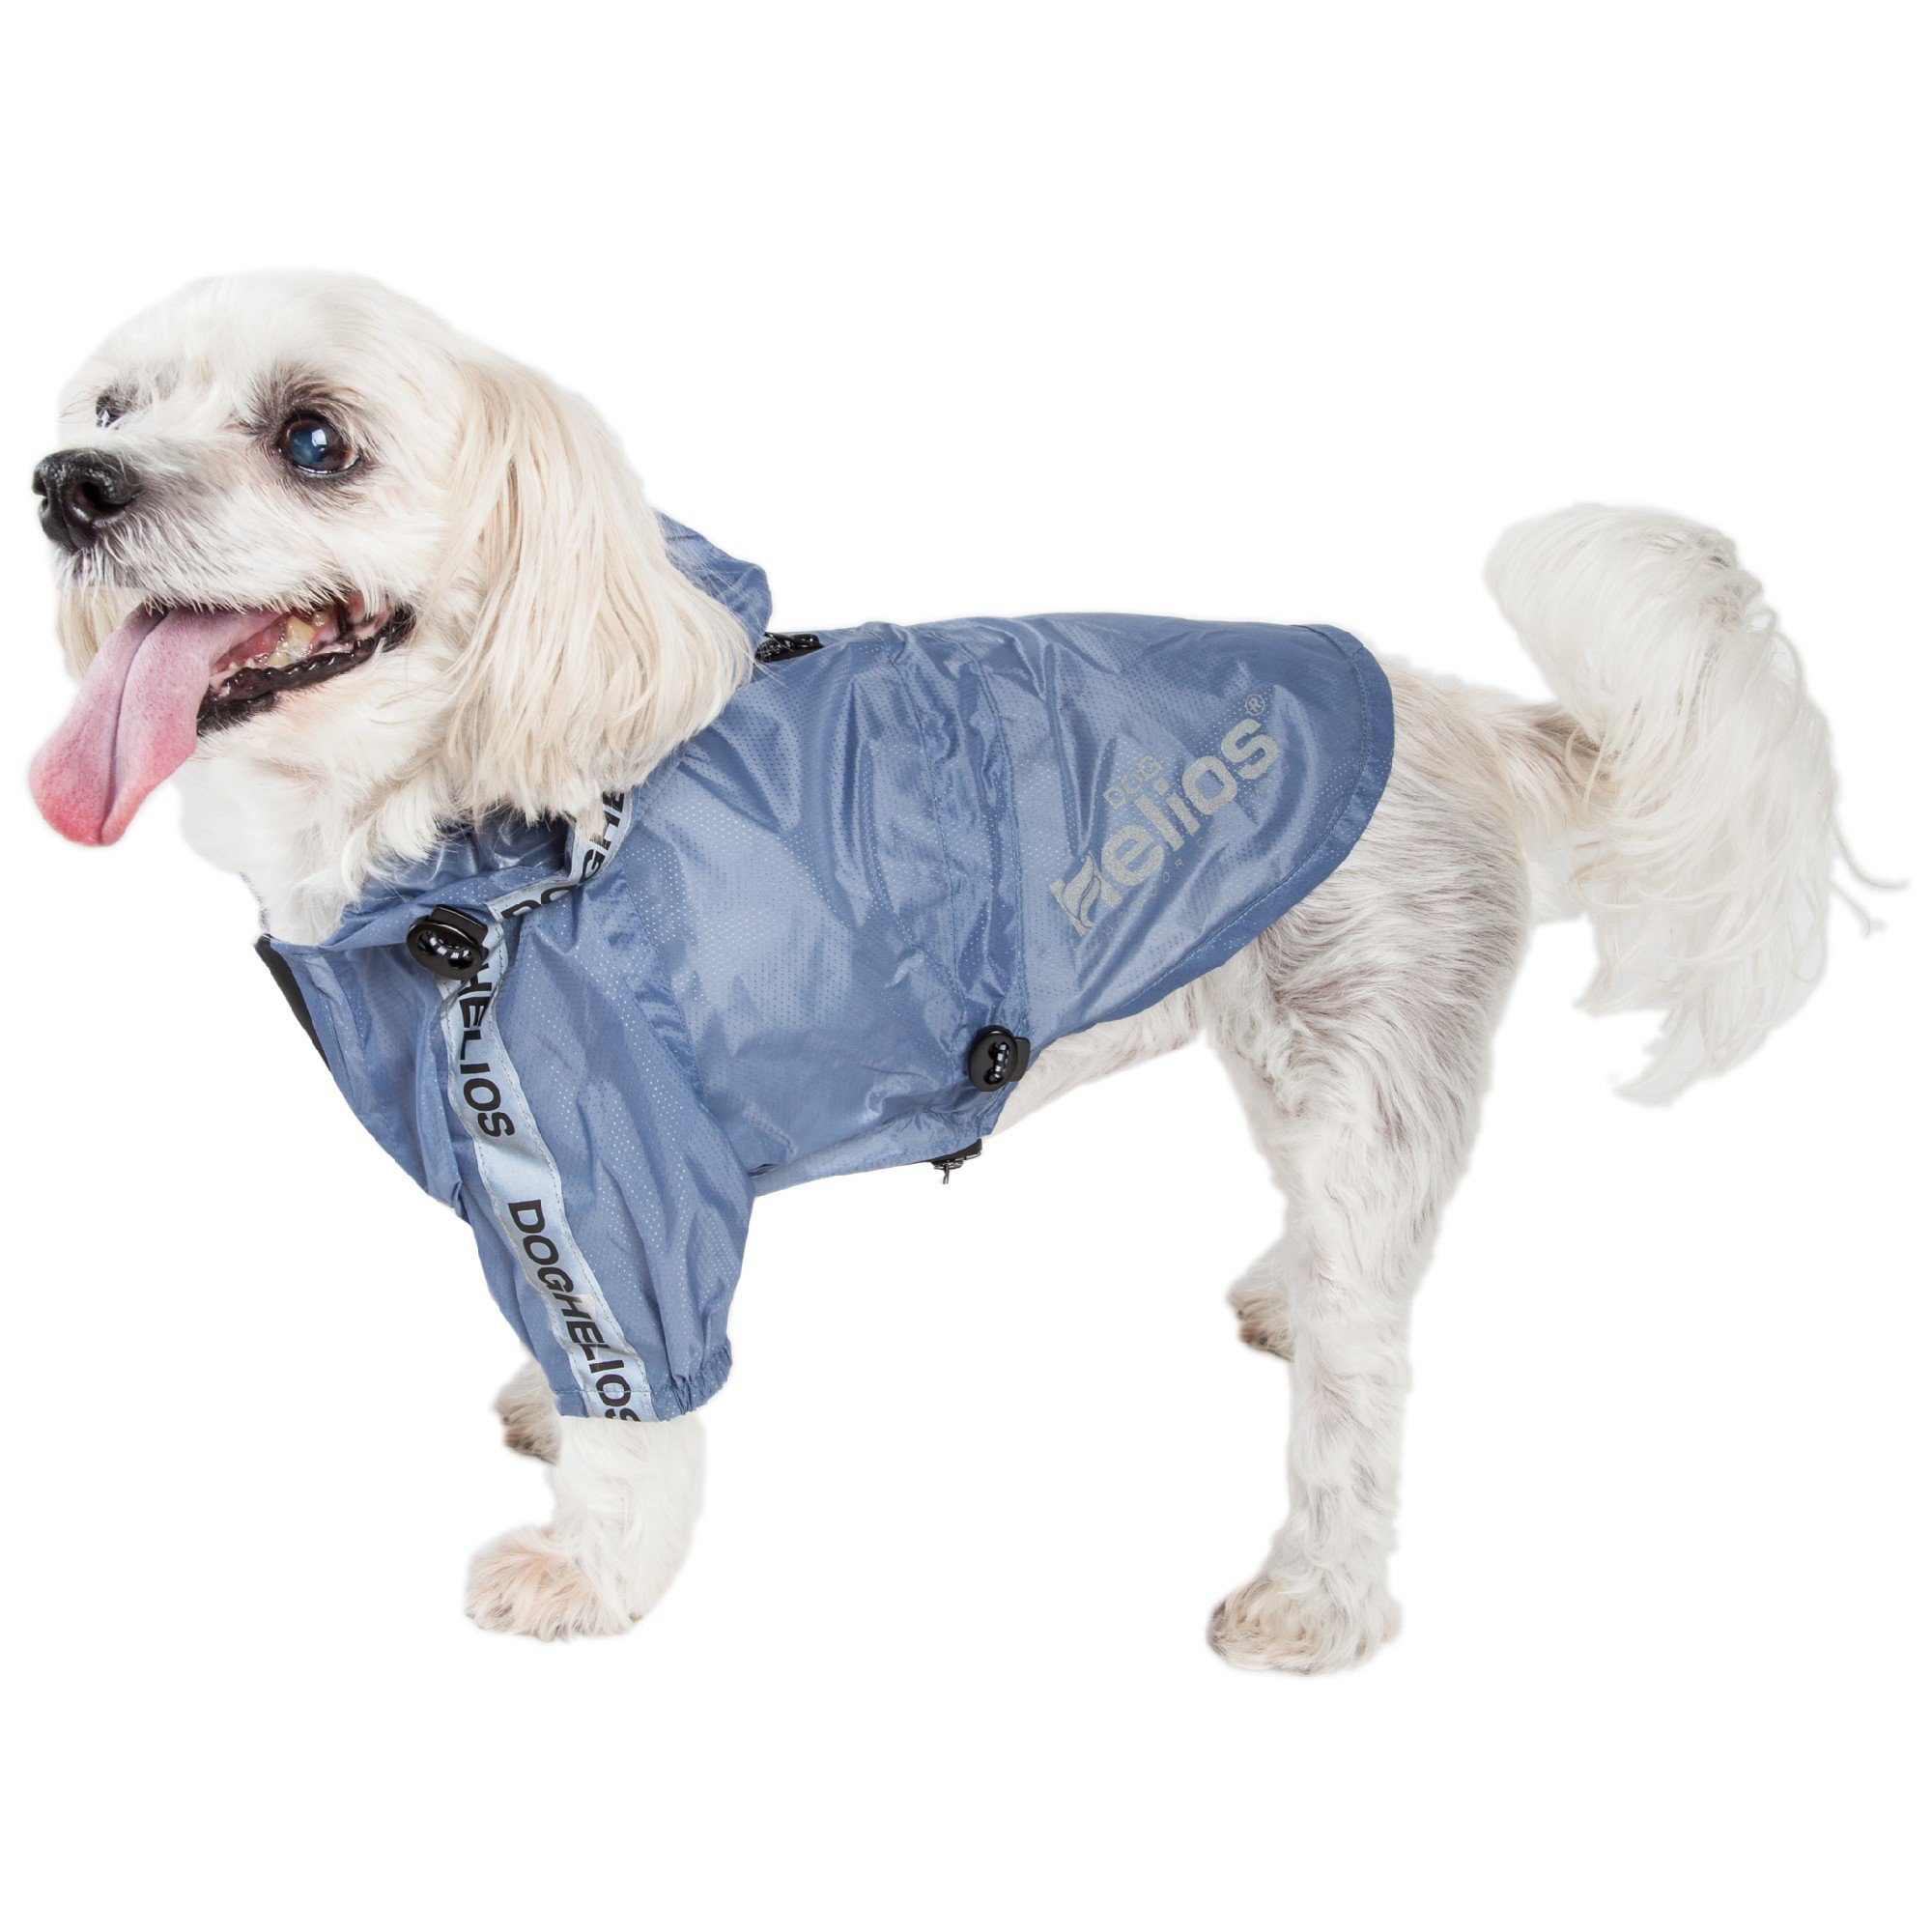 Dog Helios Torrential Shield Waterproof Blue Dog Windbreaker Raincoat, X-Small